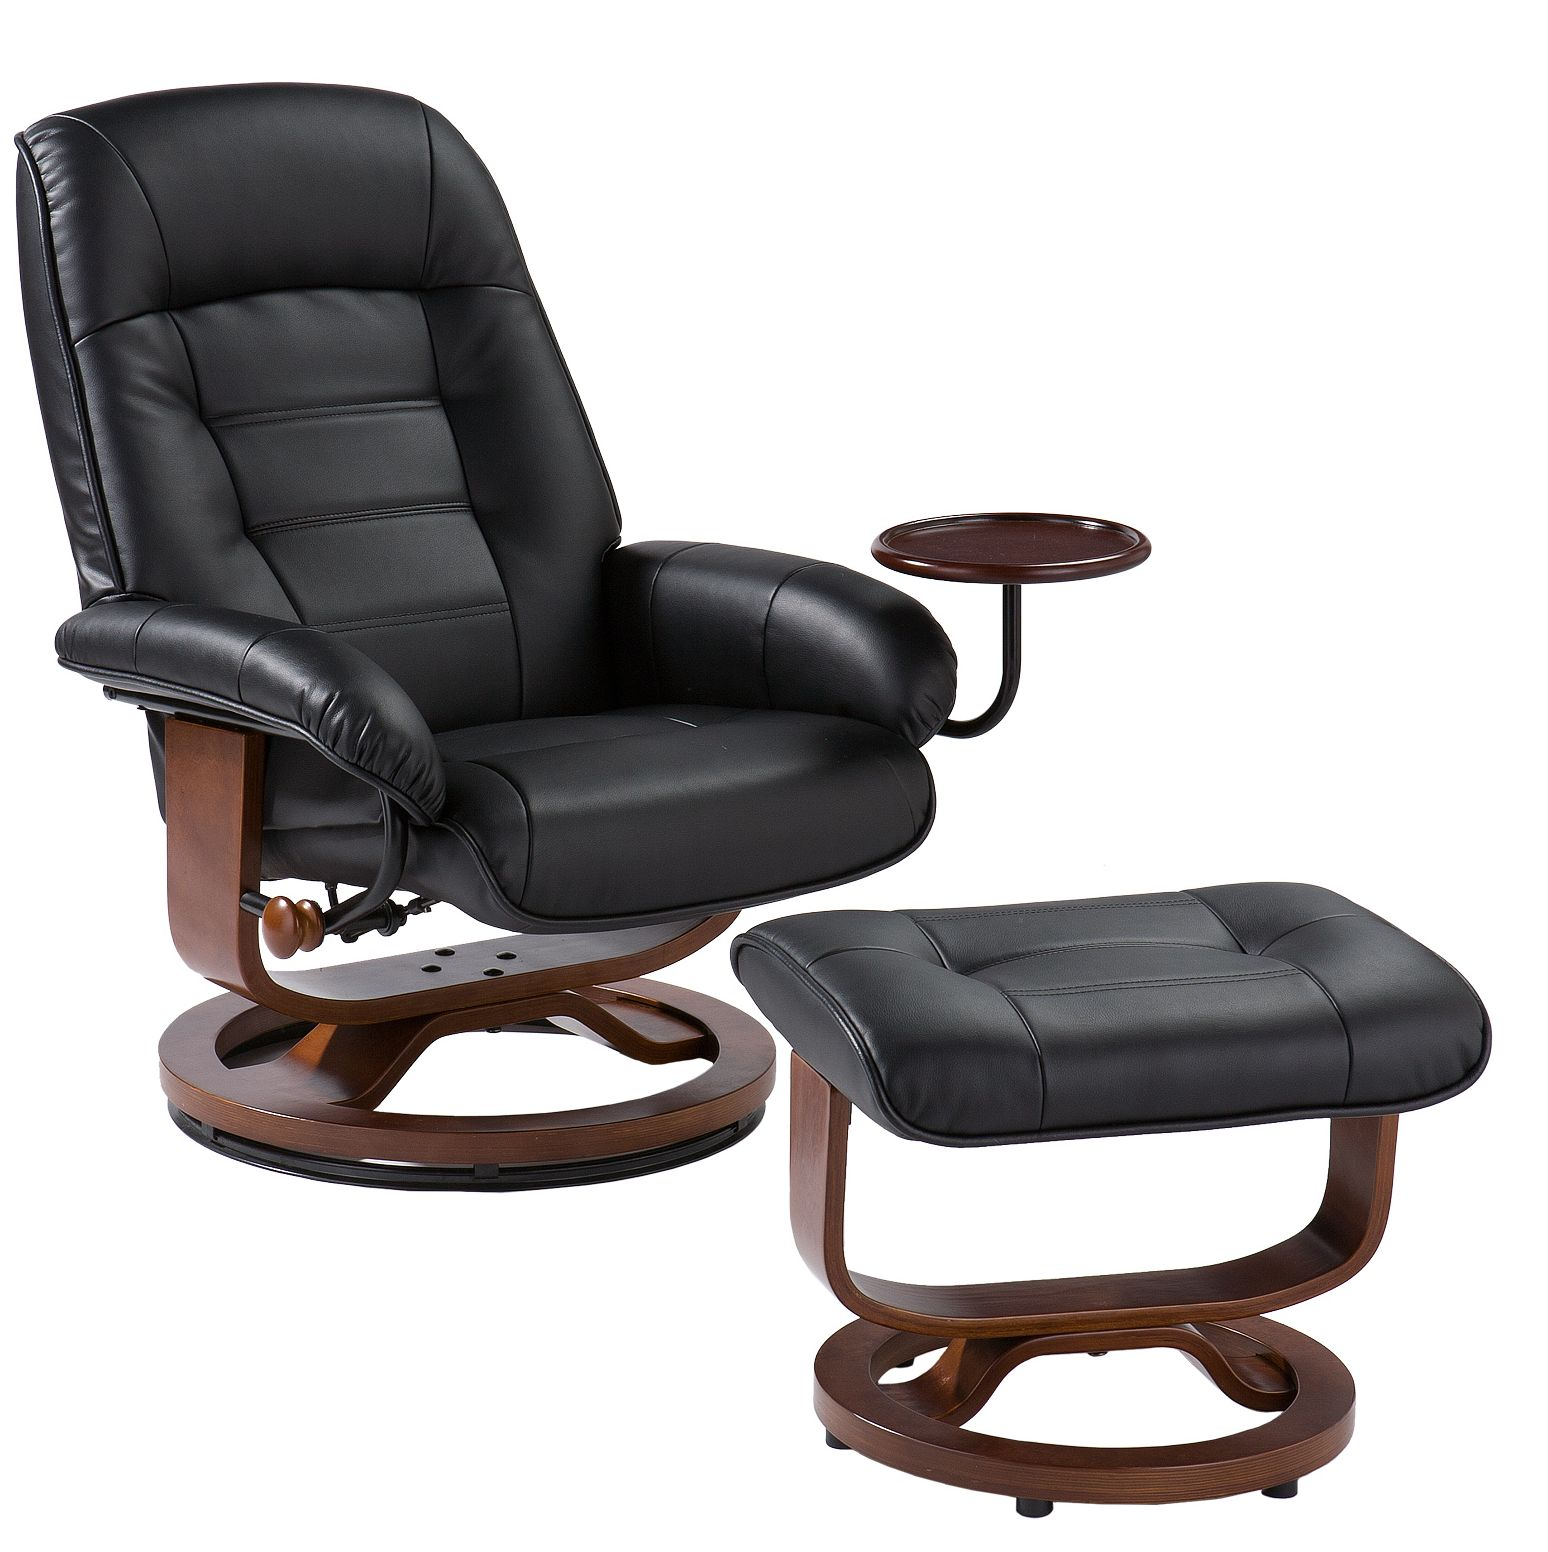 euro style recliner and ottoman in black leather stargate cinema